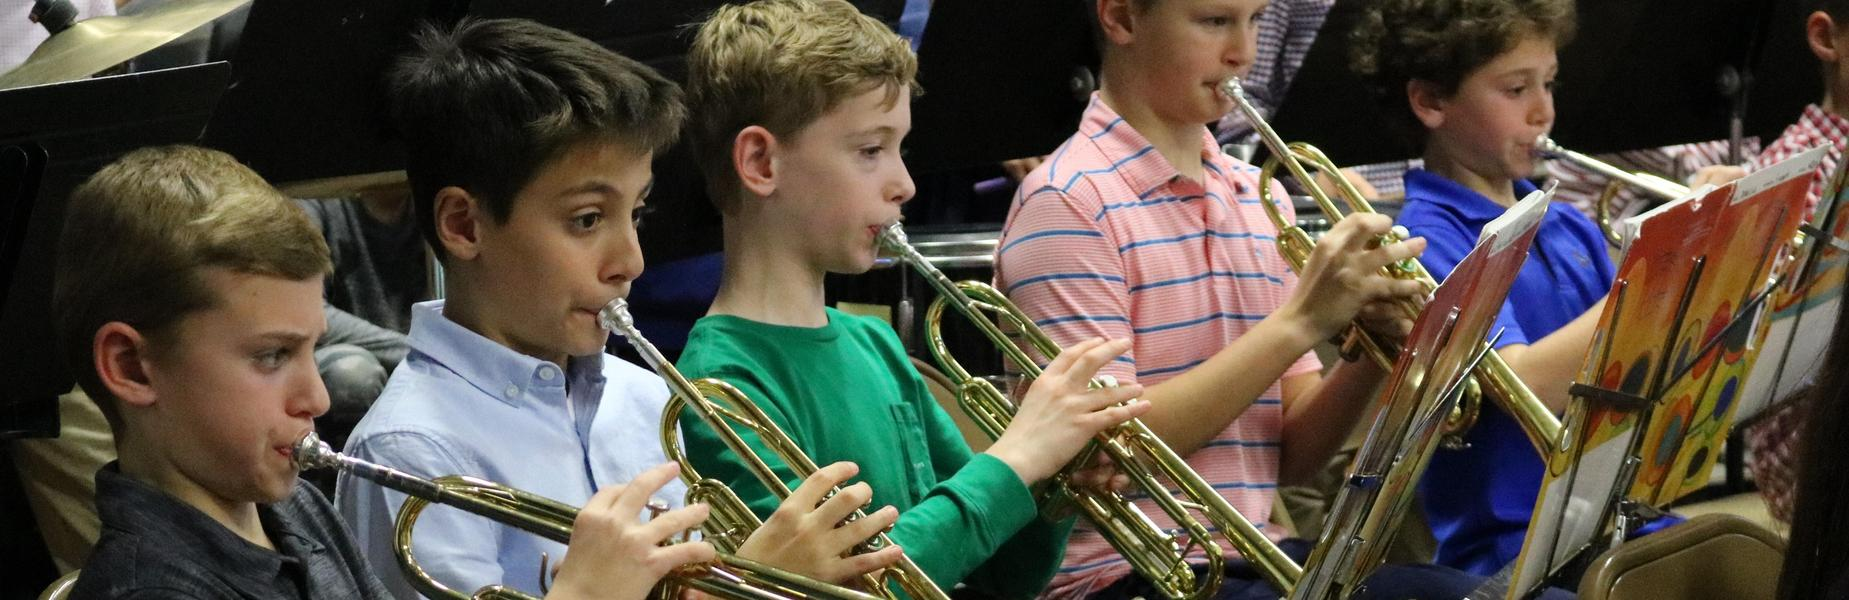 Five 5th grade trumpeteers perform with the Wilson School band and chorus holiday concert in December 2018.